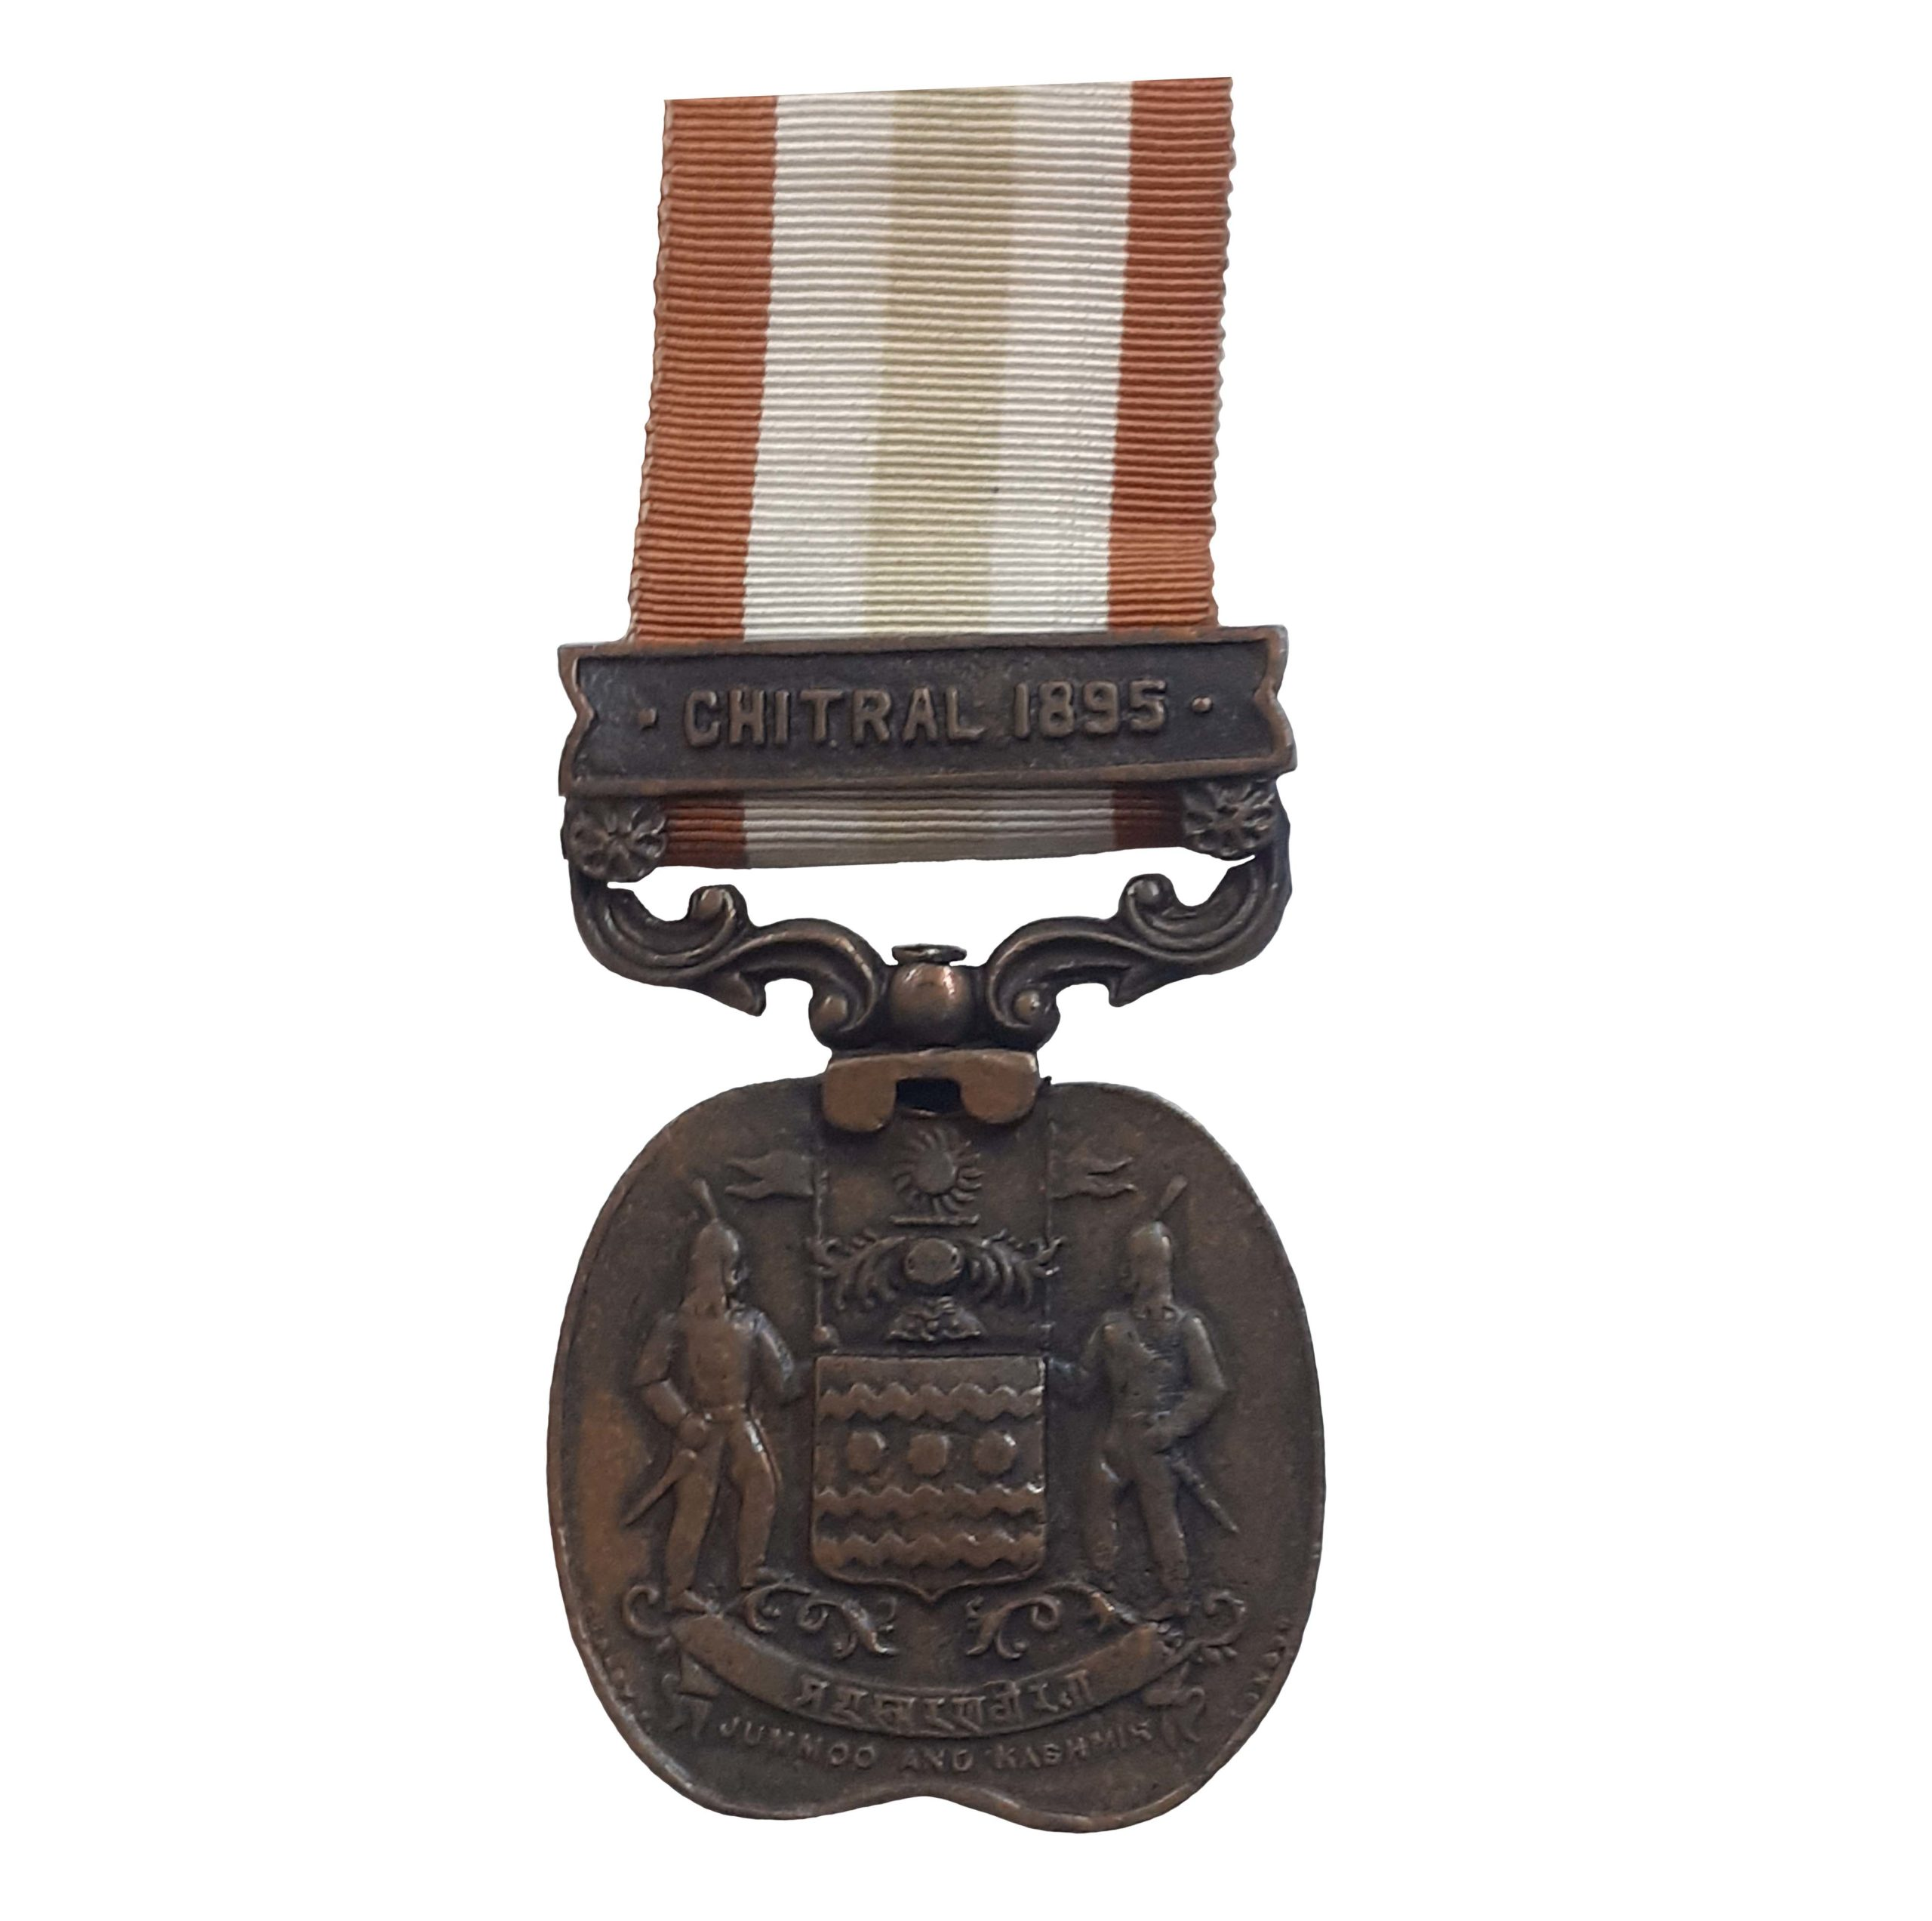 A Jummoo and Kashmir Medal, 1895, one clasp, Chitral 1896